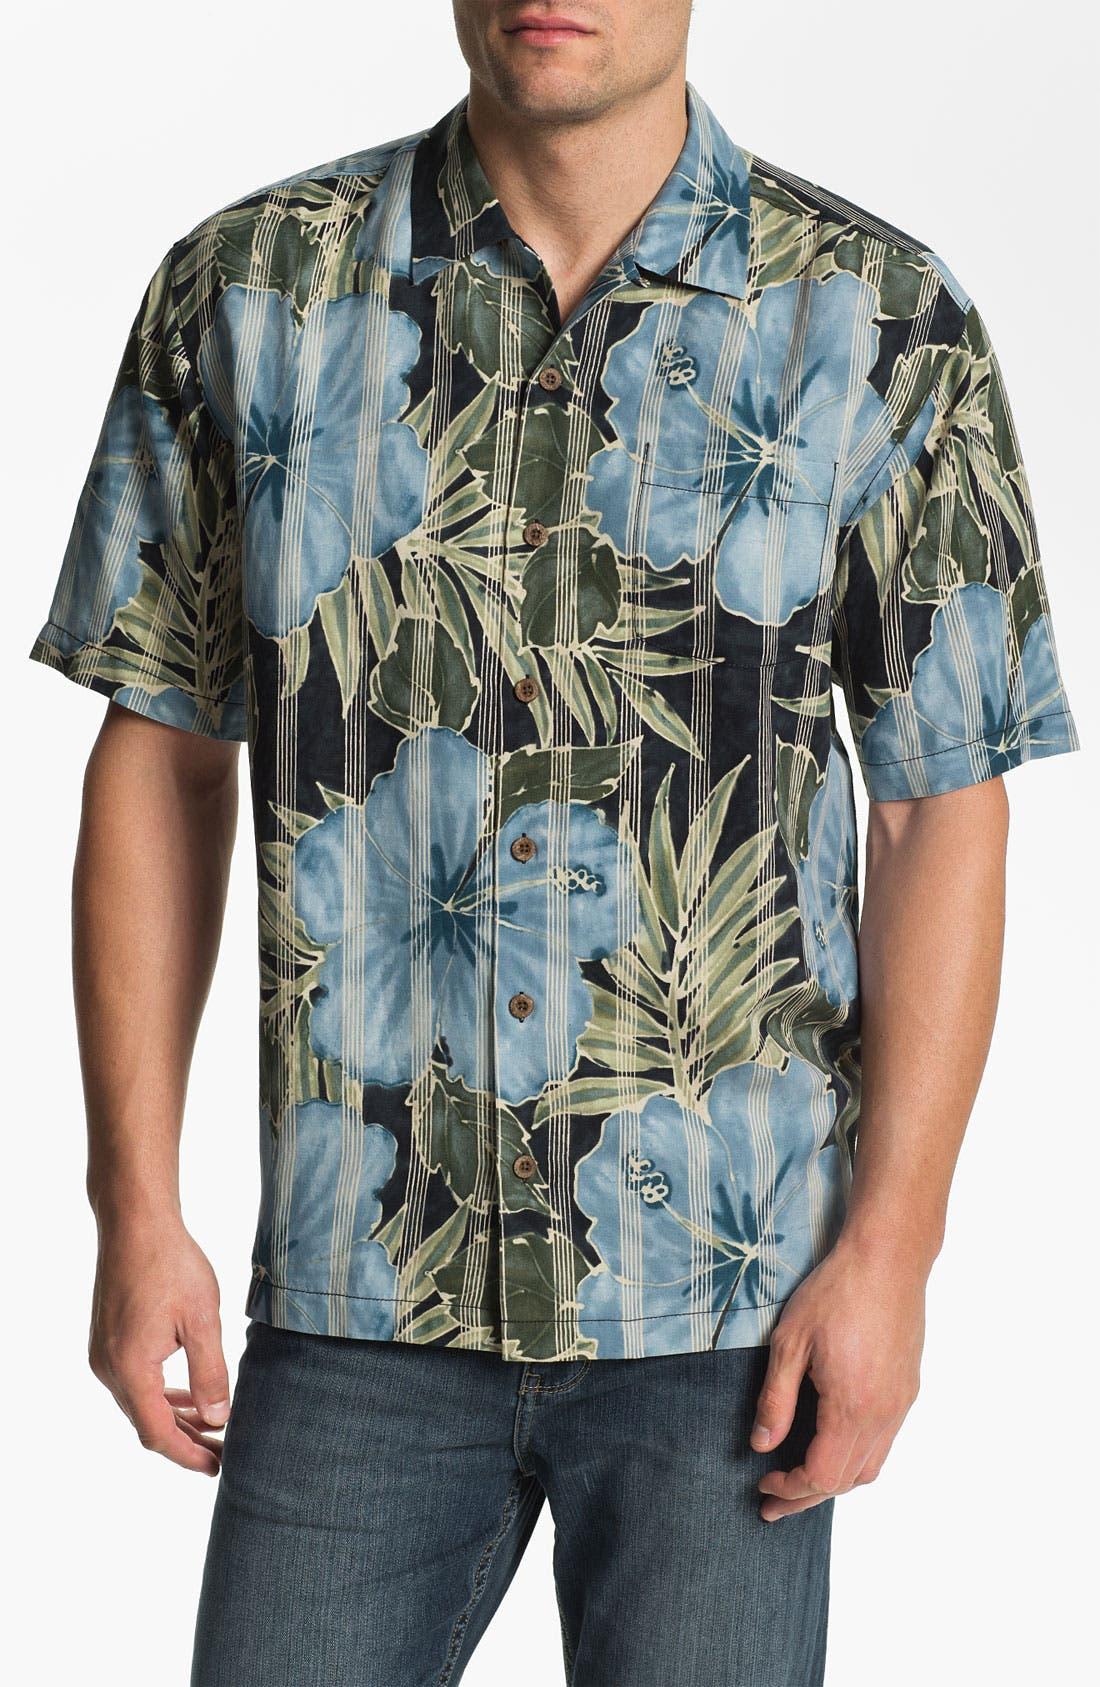 Main Image - Tommy Bahama 'Garden of Hope Courage' Linen & Silk Campshirt